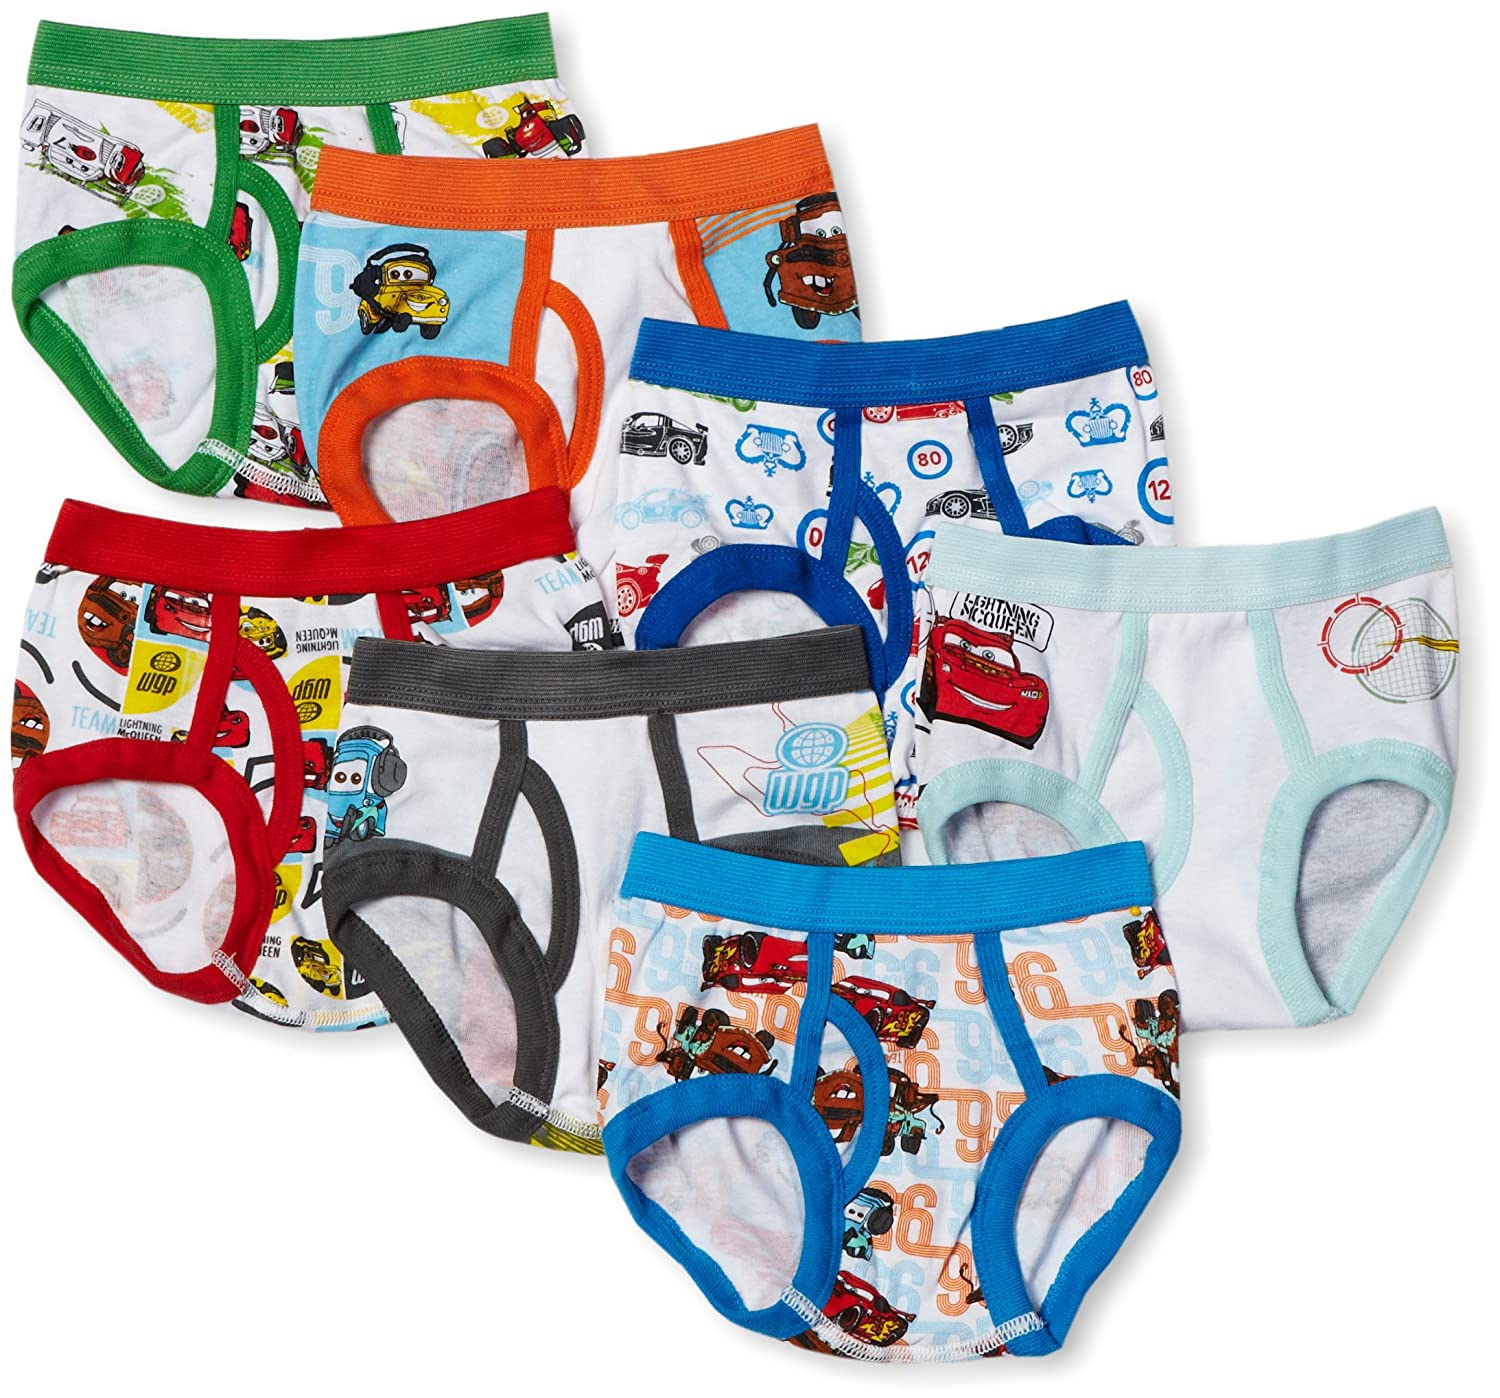 Cars Underwear for Toddler Boys 7-Pack (2T-4T) 4cd8cbaad